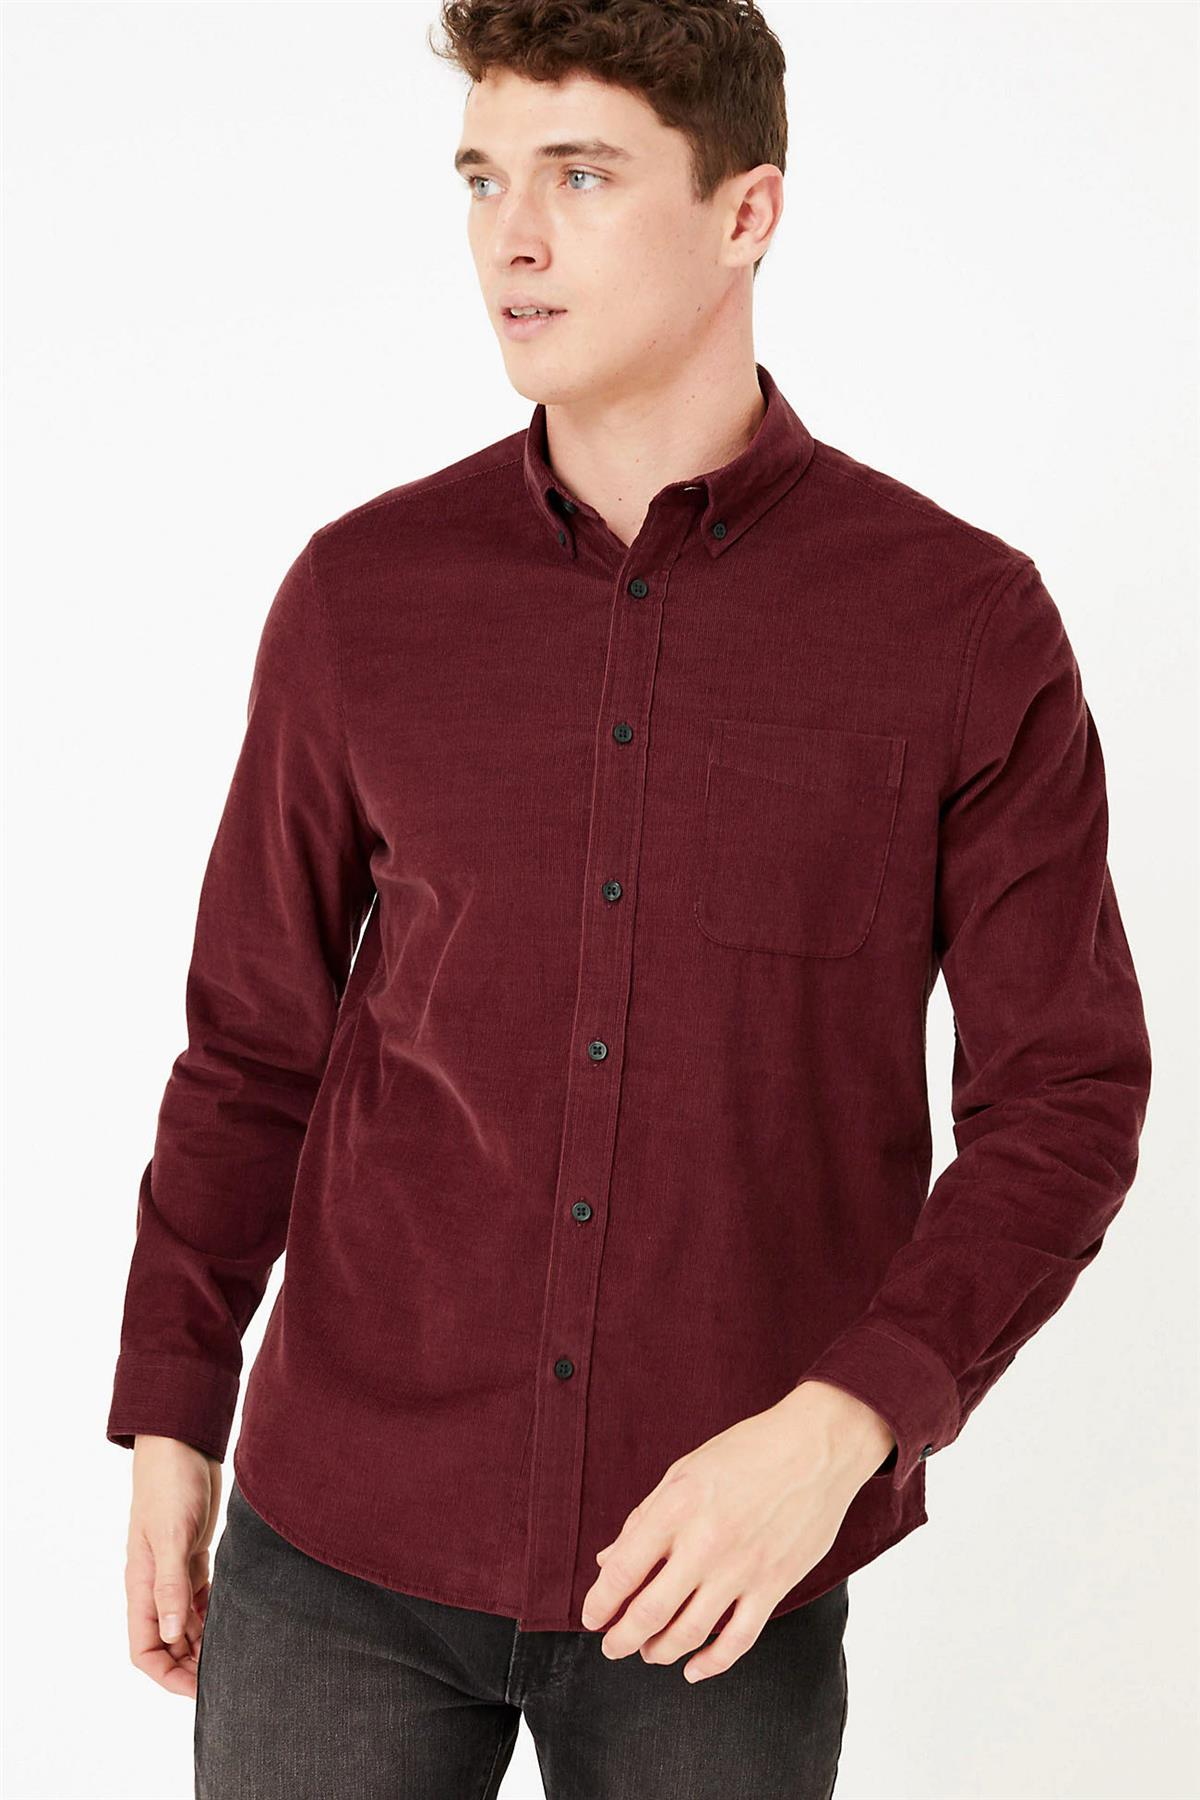 M-amp-S-Marks-and-Spencer-Mens-Fine-Cotton-Corduroy-Needlecord-Shirt-XL-4XL thumbnail 12